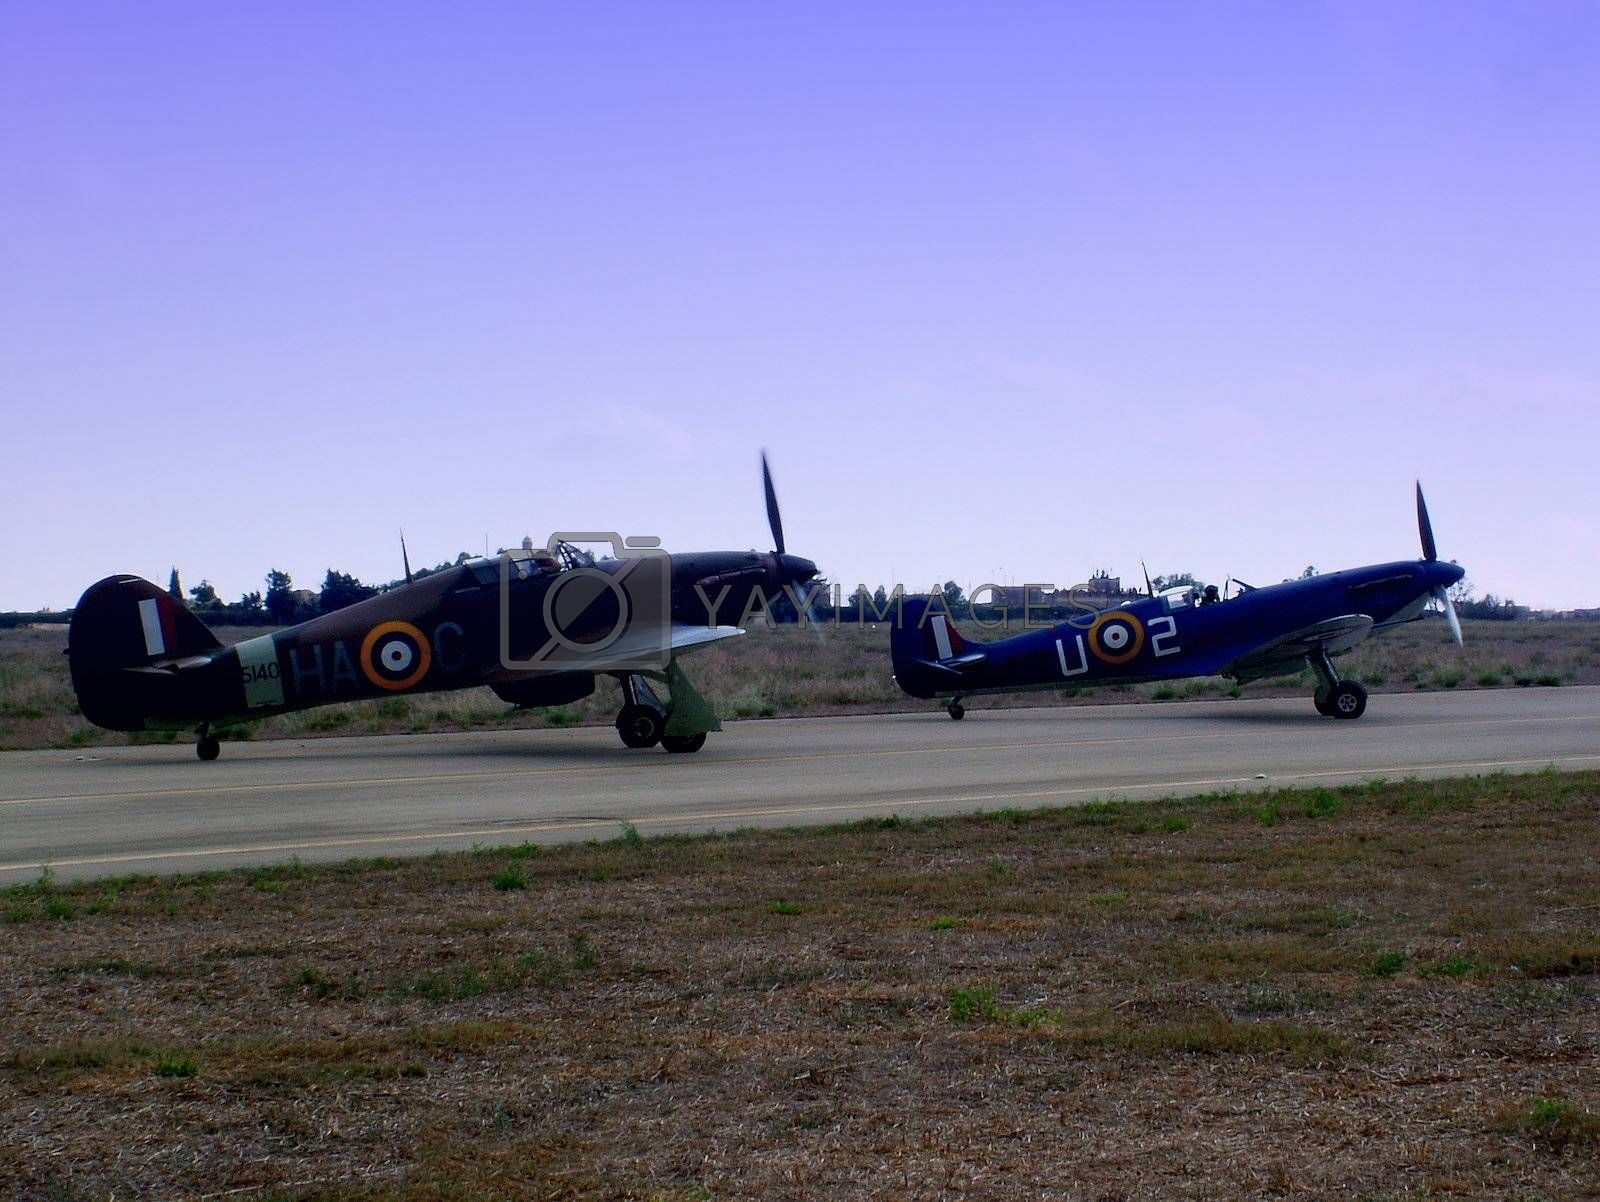 The famous WWII Spitfire and Hurricane airplanes